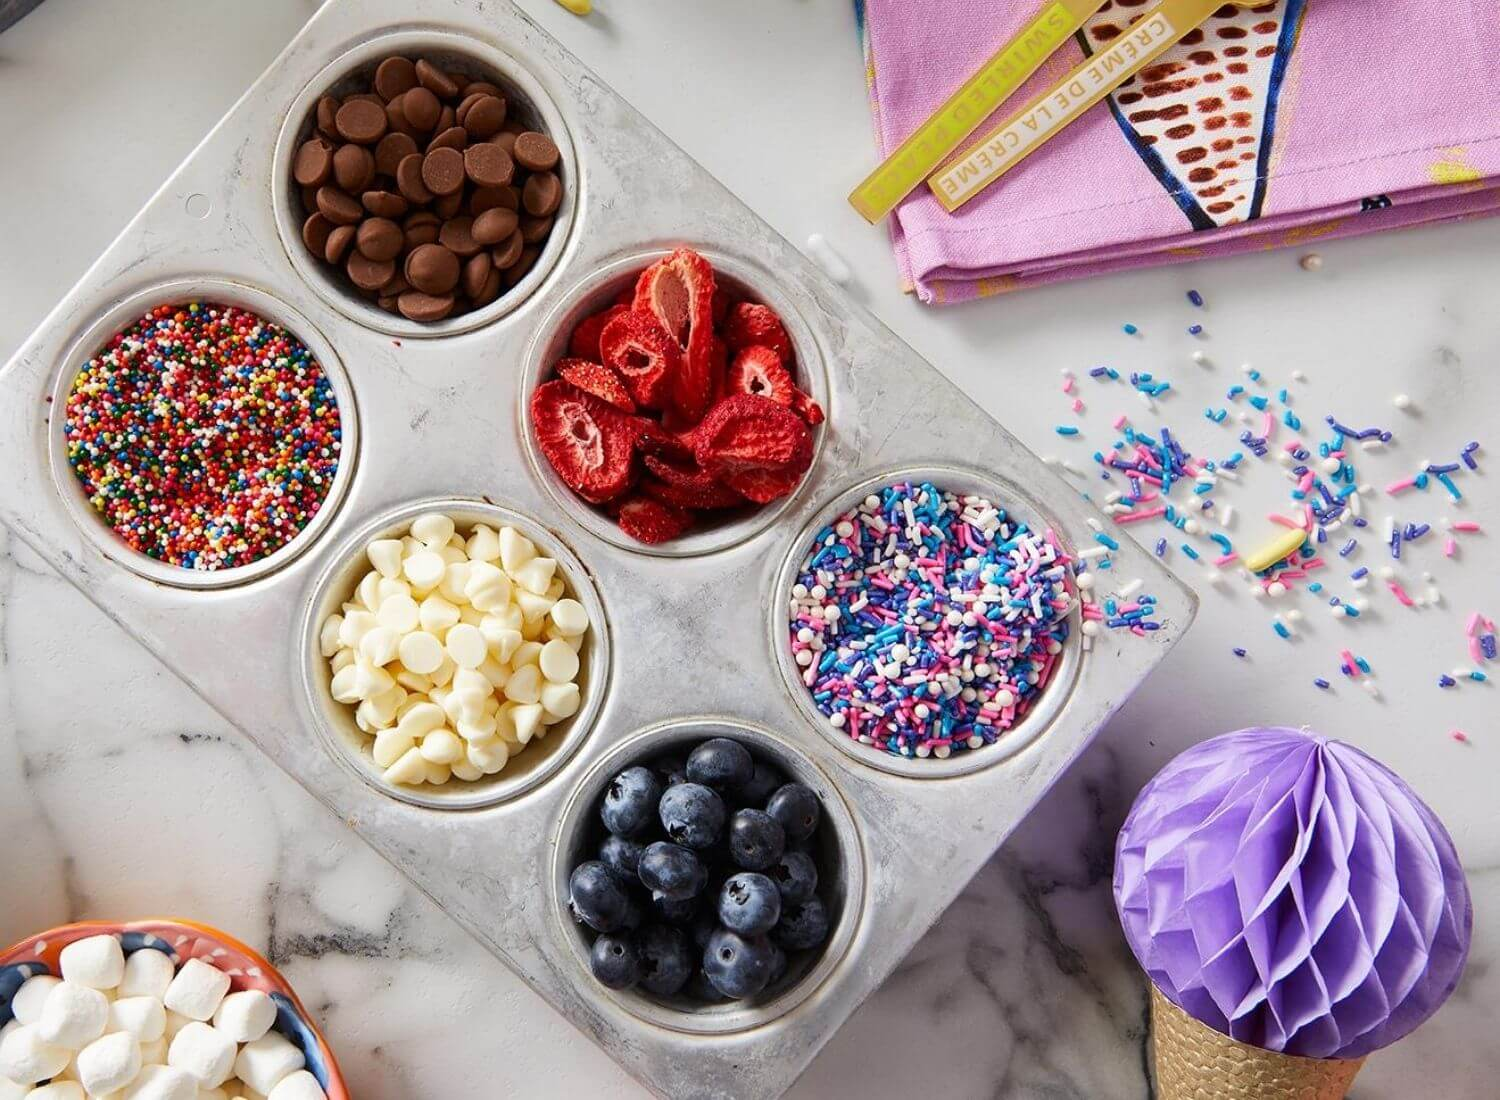 12 Ideal Toppings for Ice cream You Should Try